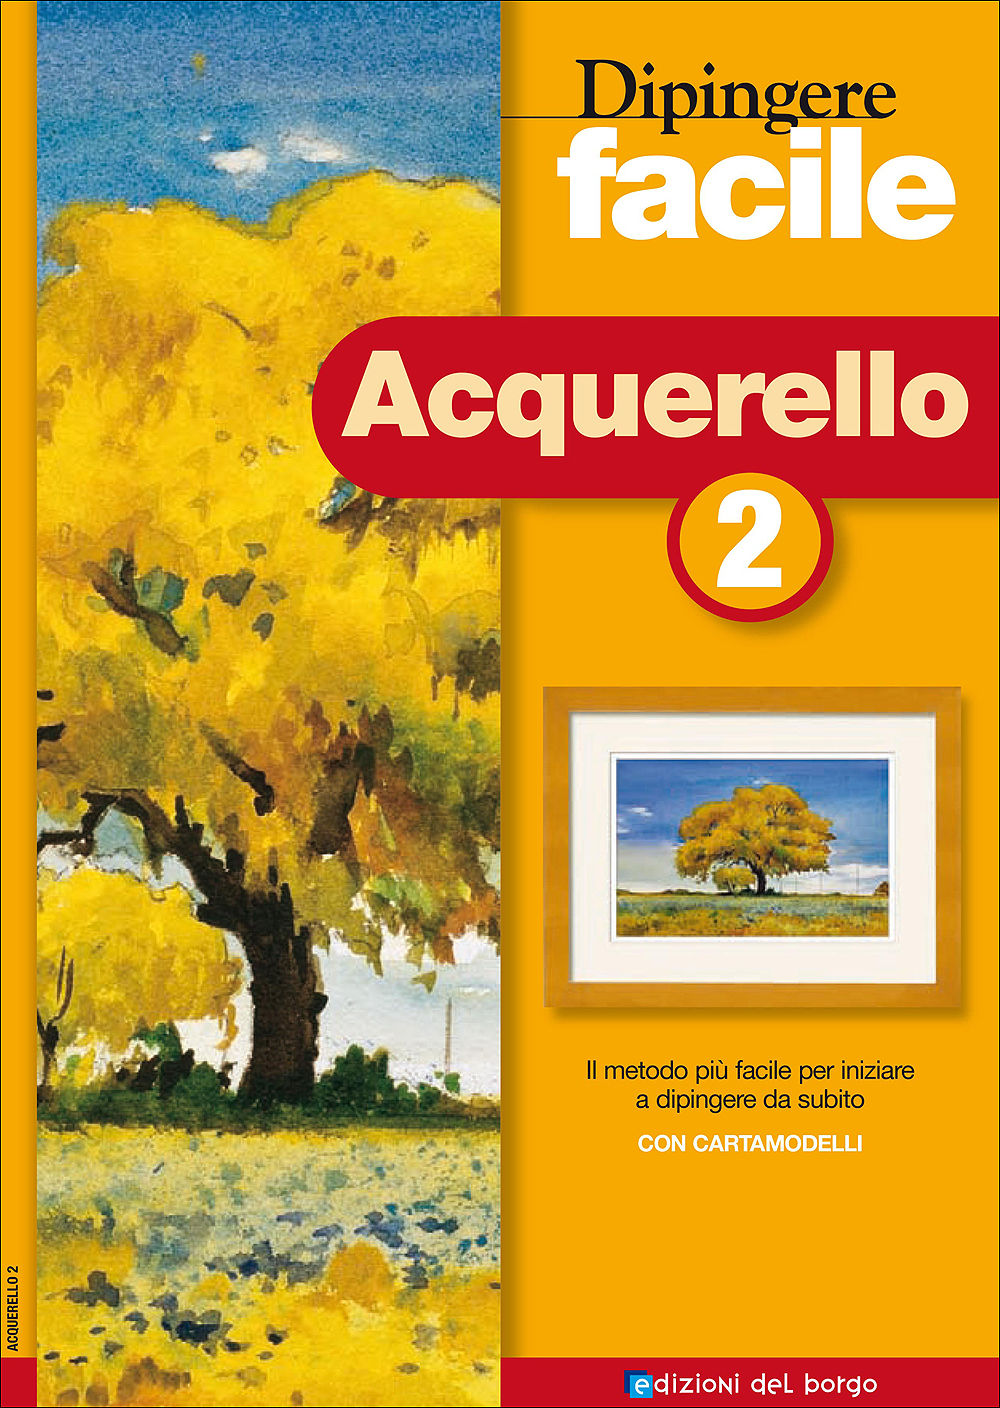 Dipingere facile - Acquerello 2